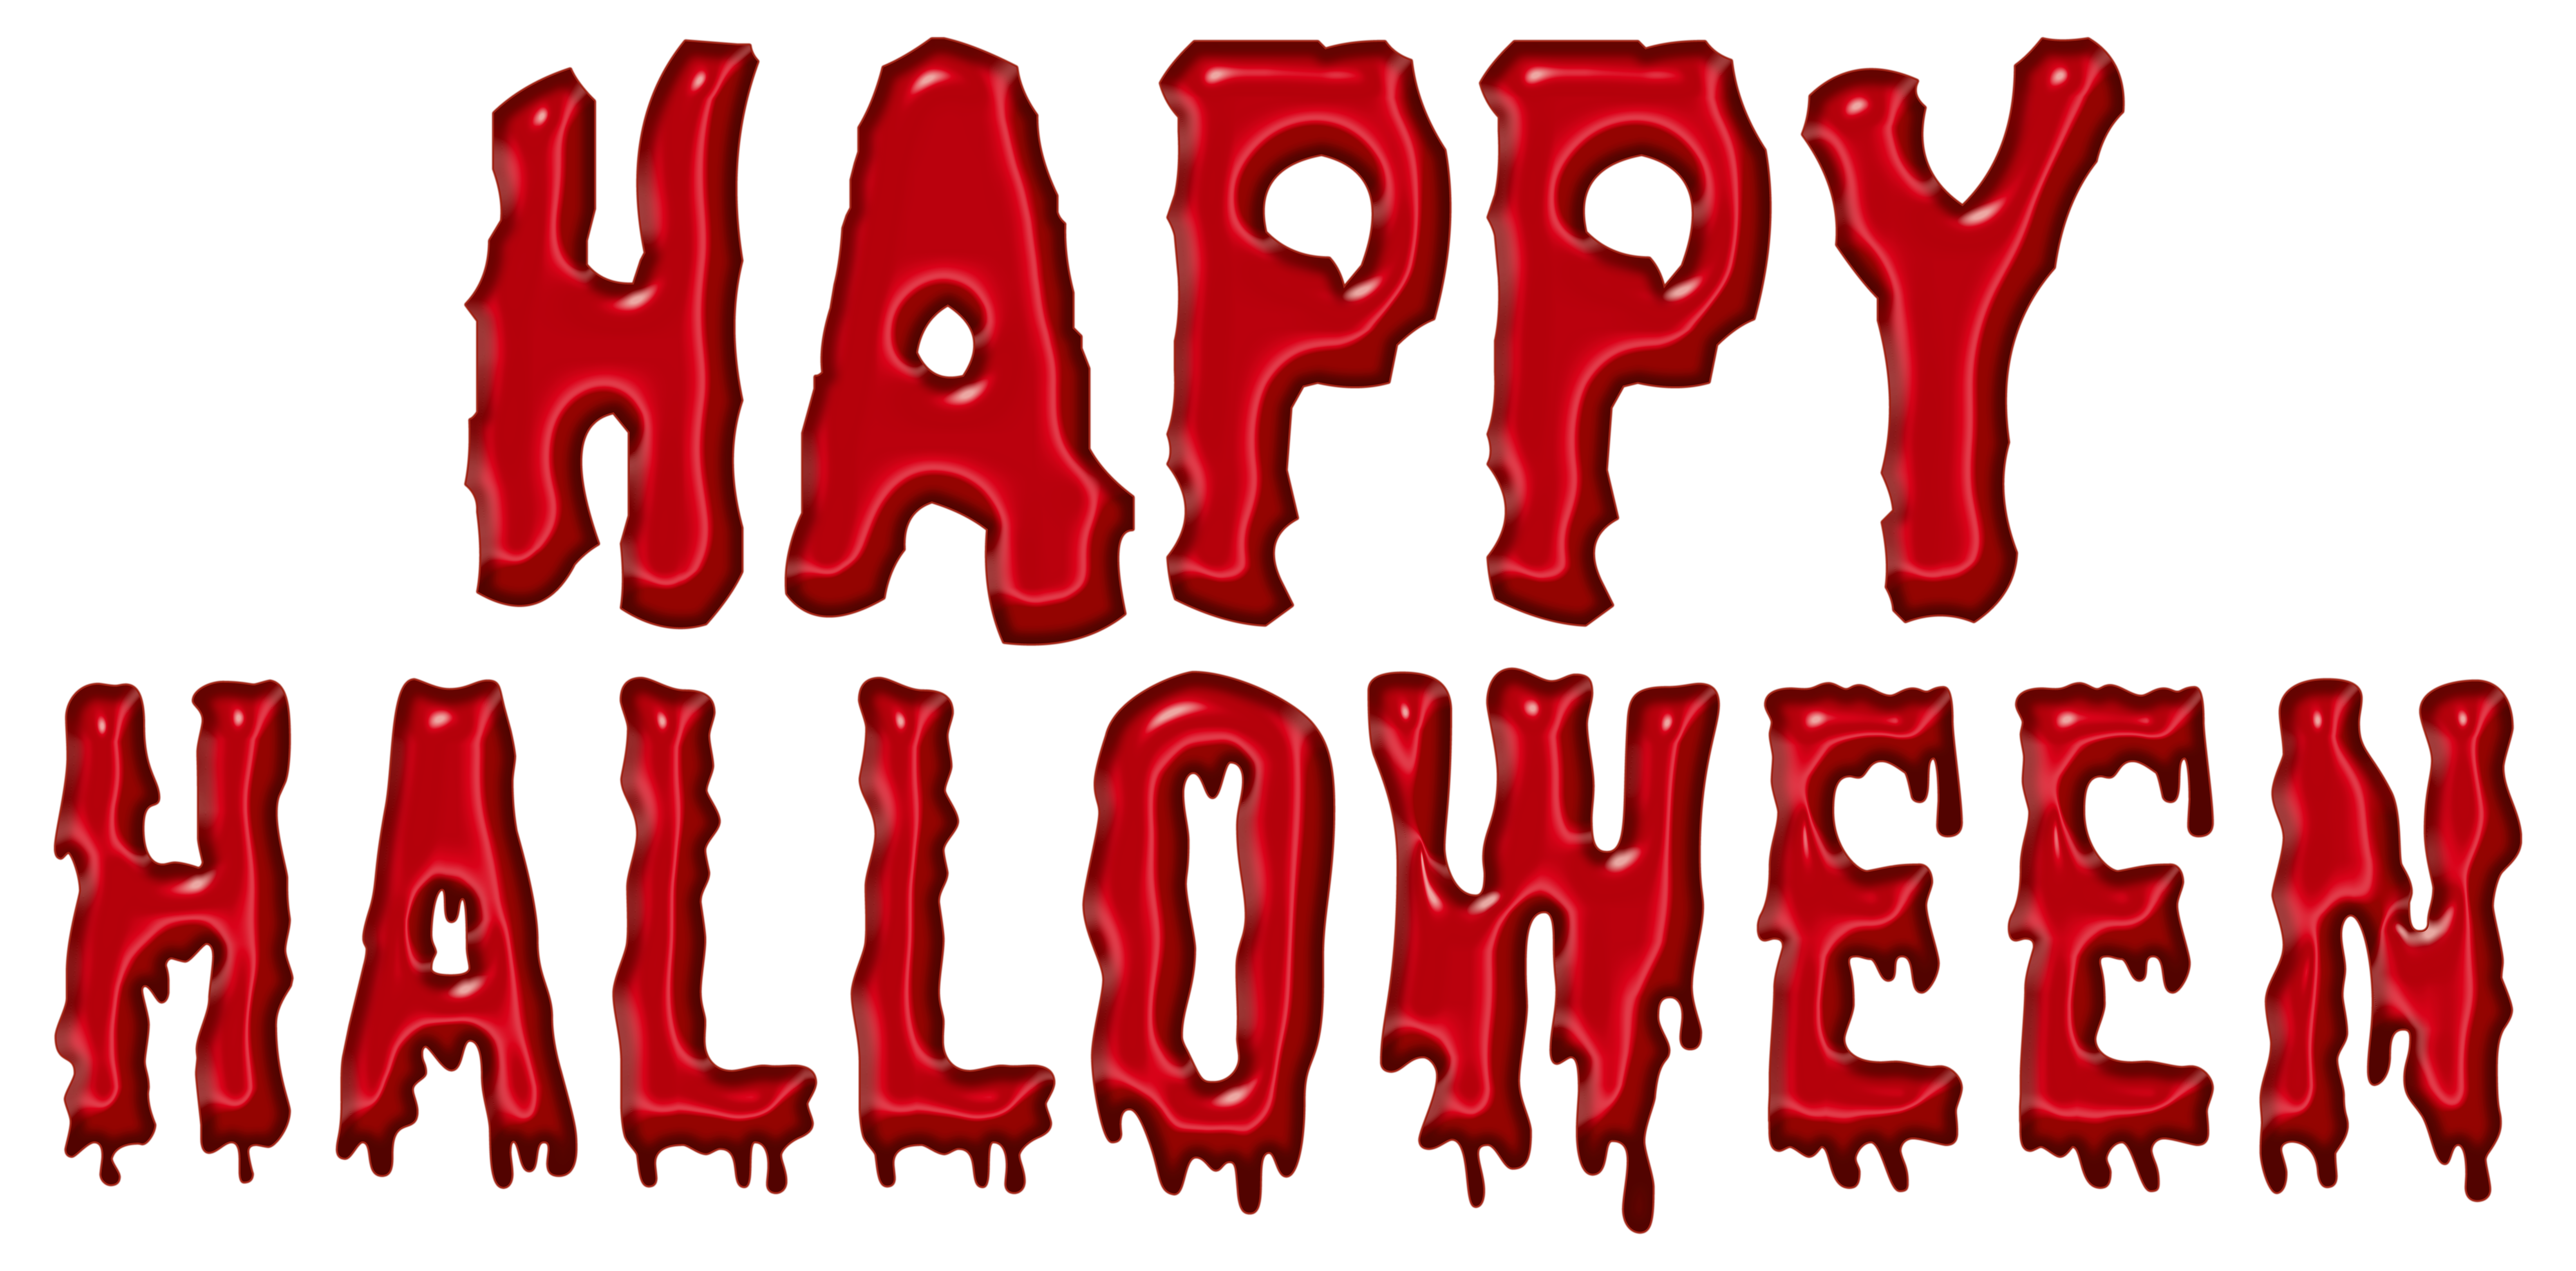 happy halloween clipart transparent - Clipground